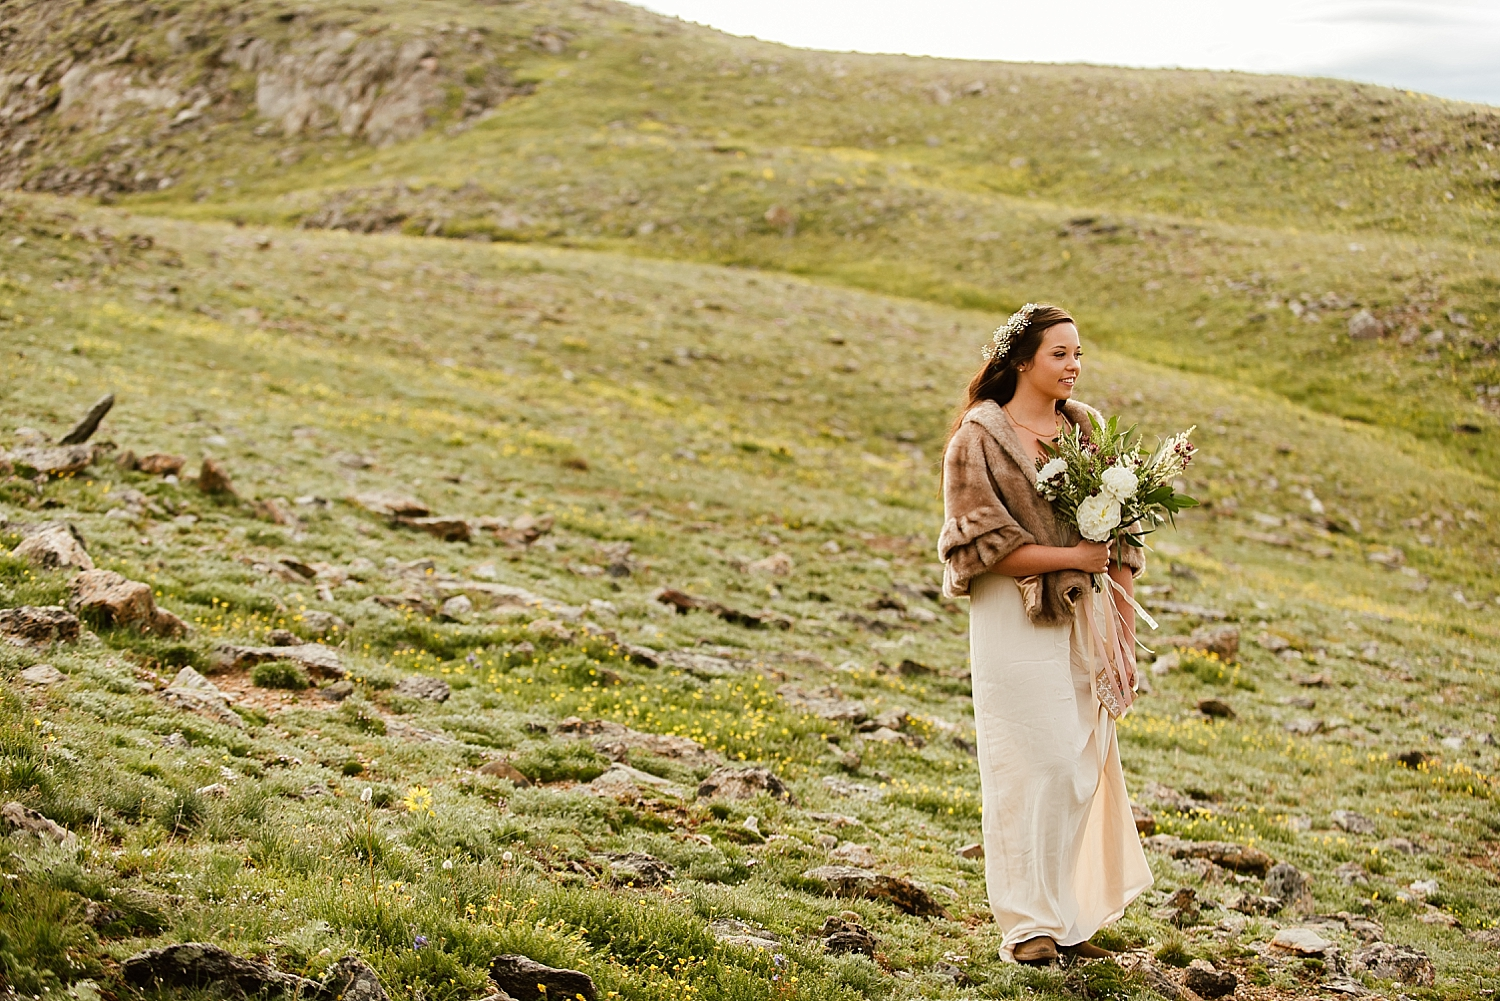 This mountain tundra elopement has to be one of the most rustic, and beautiful mountain weddings I have ever seen! I can't wait to get married in Rocky Mountain National Park near Estes Park, Colorado! | Mountaintop elopement photos by Colorado wedding photographer, Maddie Mae.